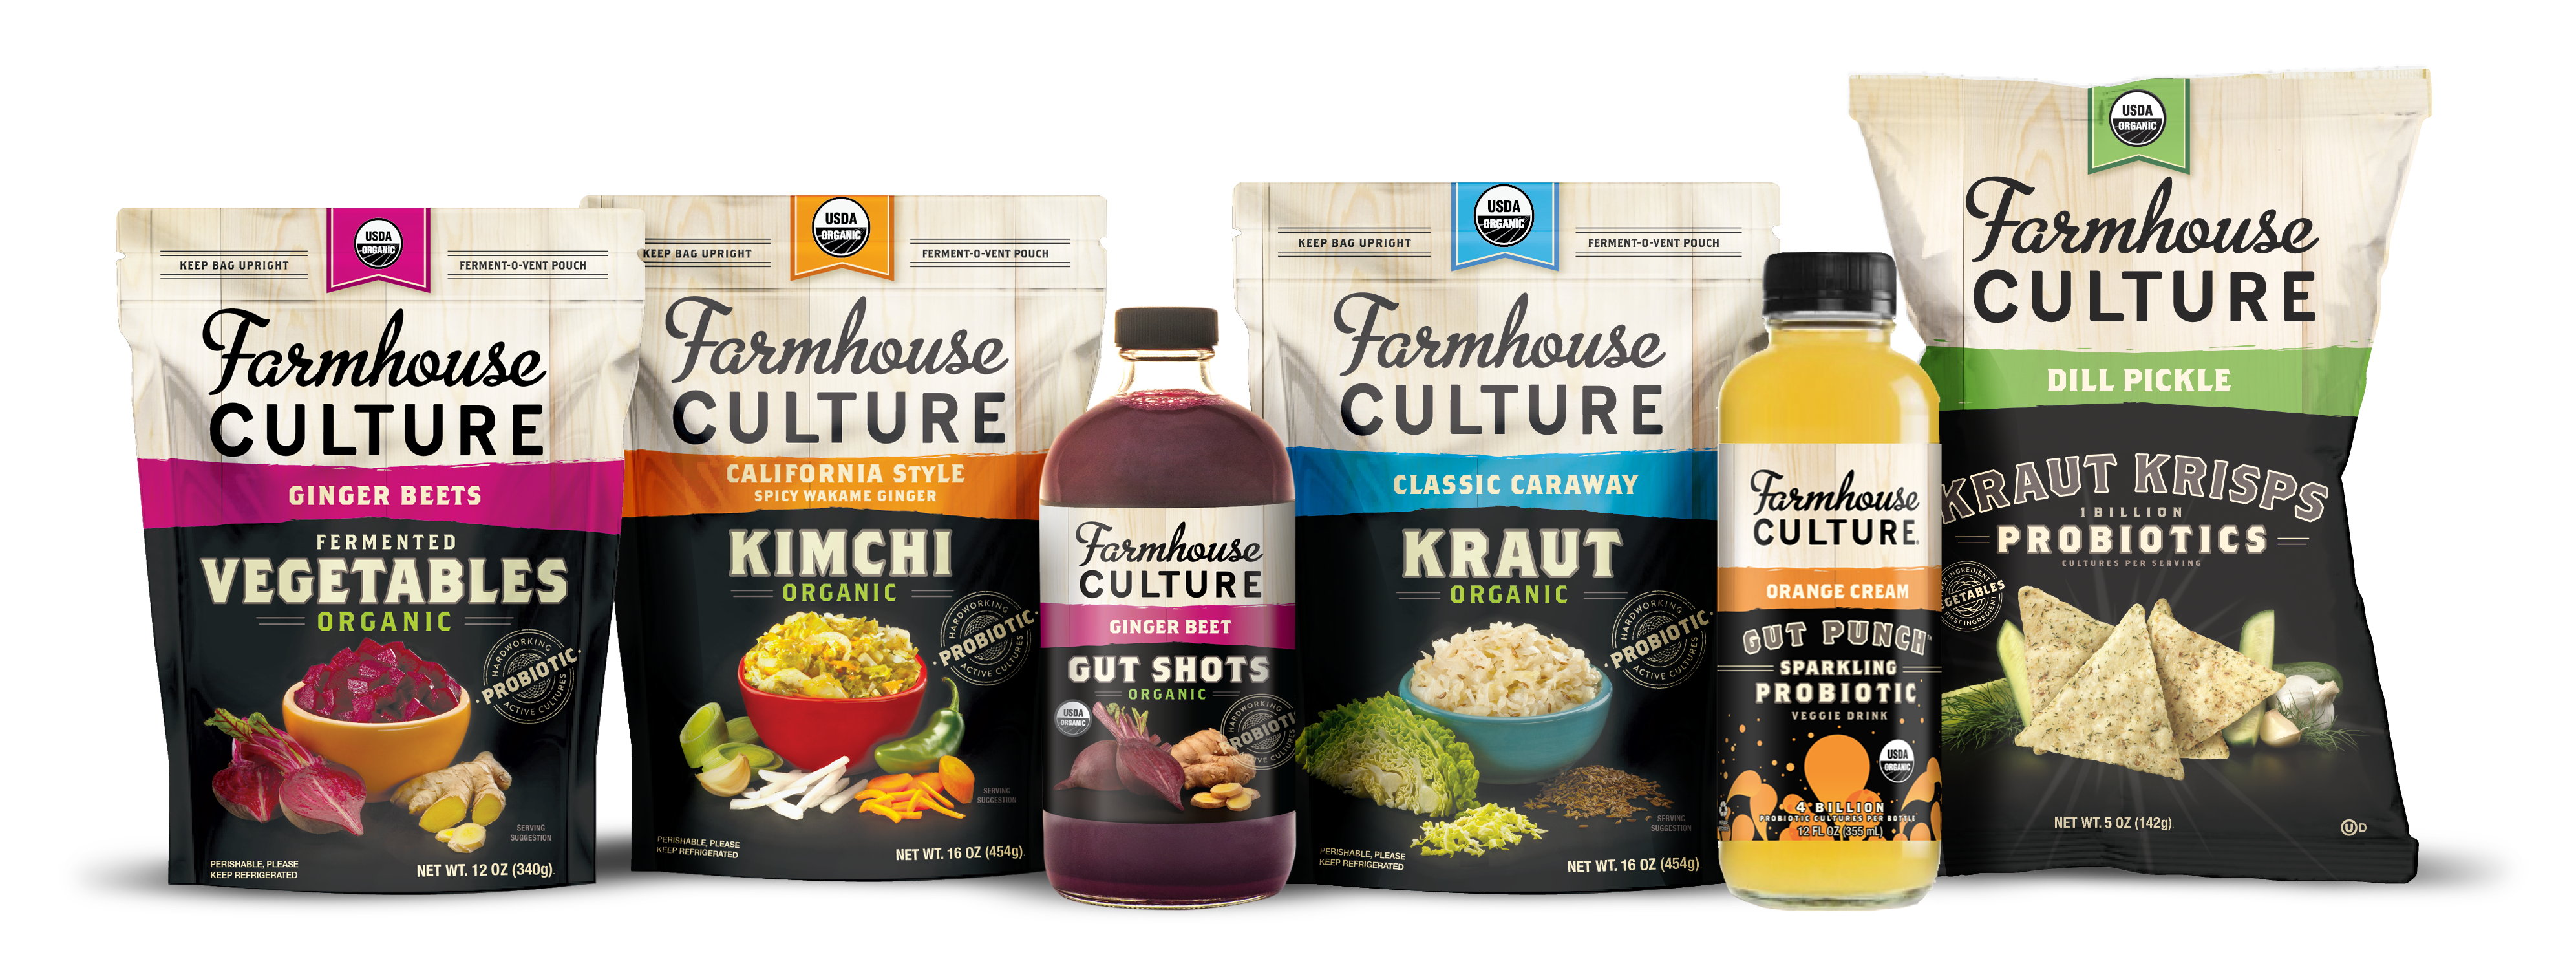 General Mills' 301 Inc venture capital fund has led a $6.5 million investment in food startup Farmhouse Culture.